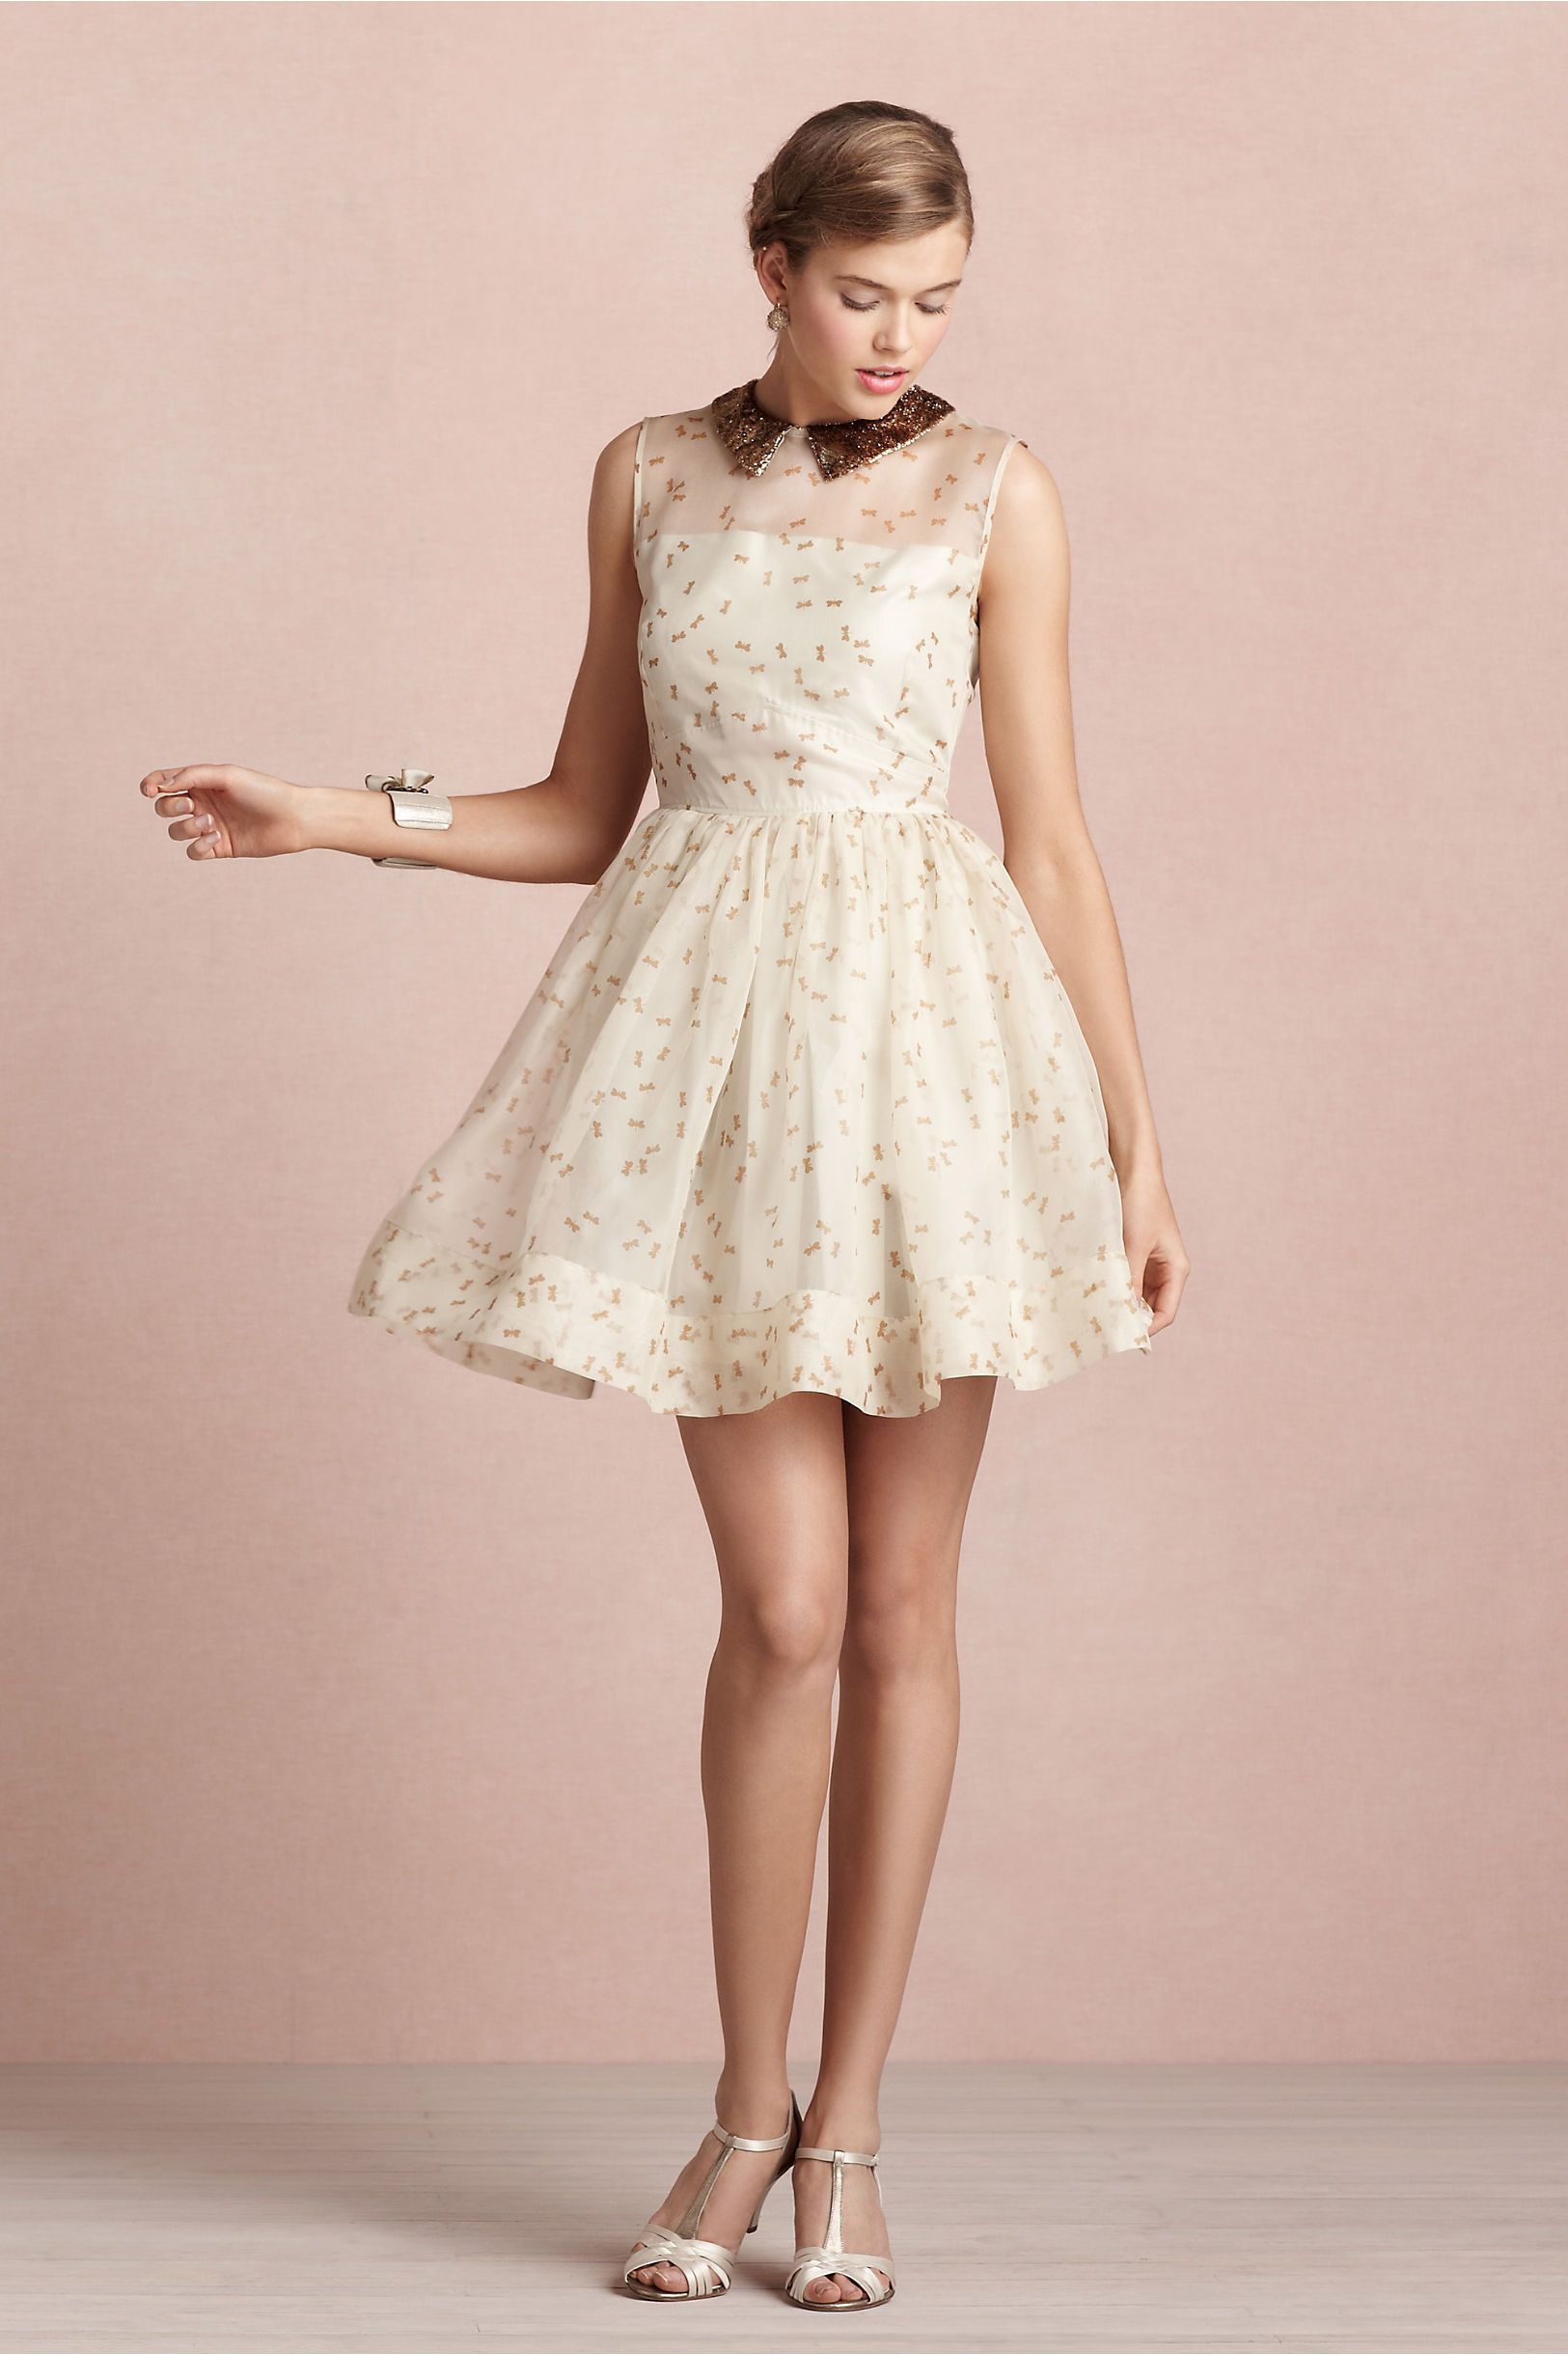 Dropwing Dress in SHOP Bridesmaids & Partygoers Dresses at BHLDN ...